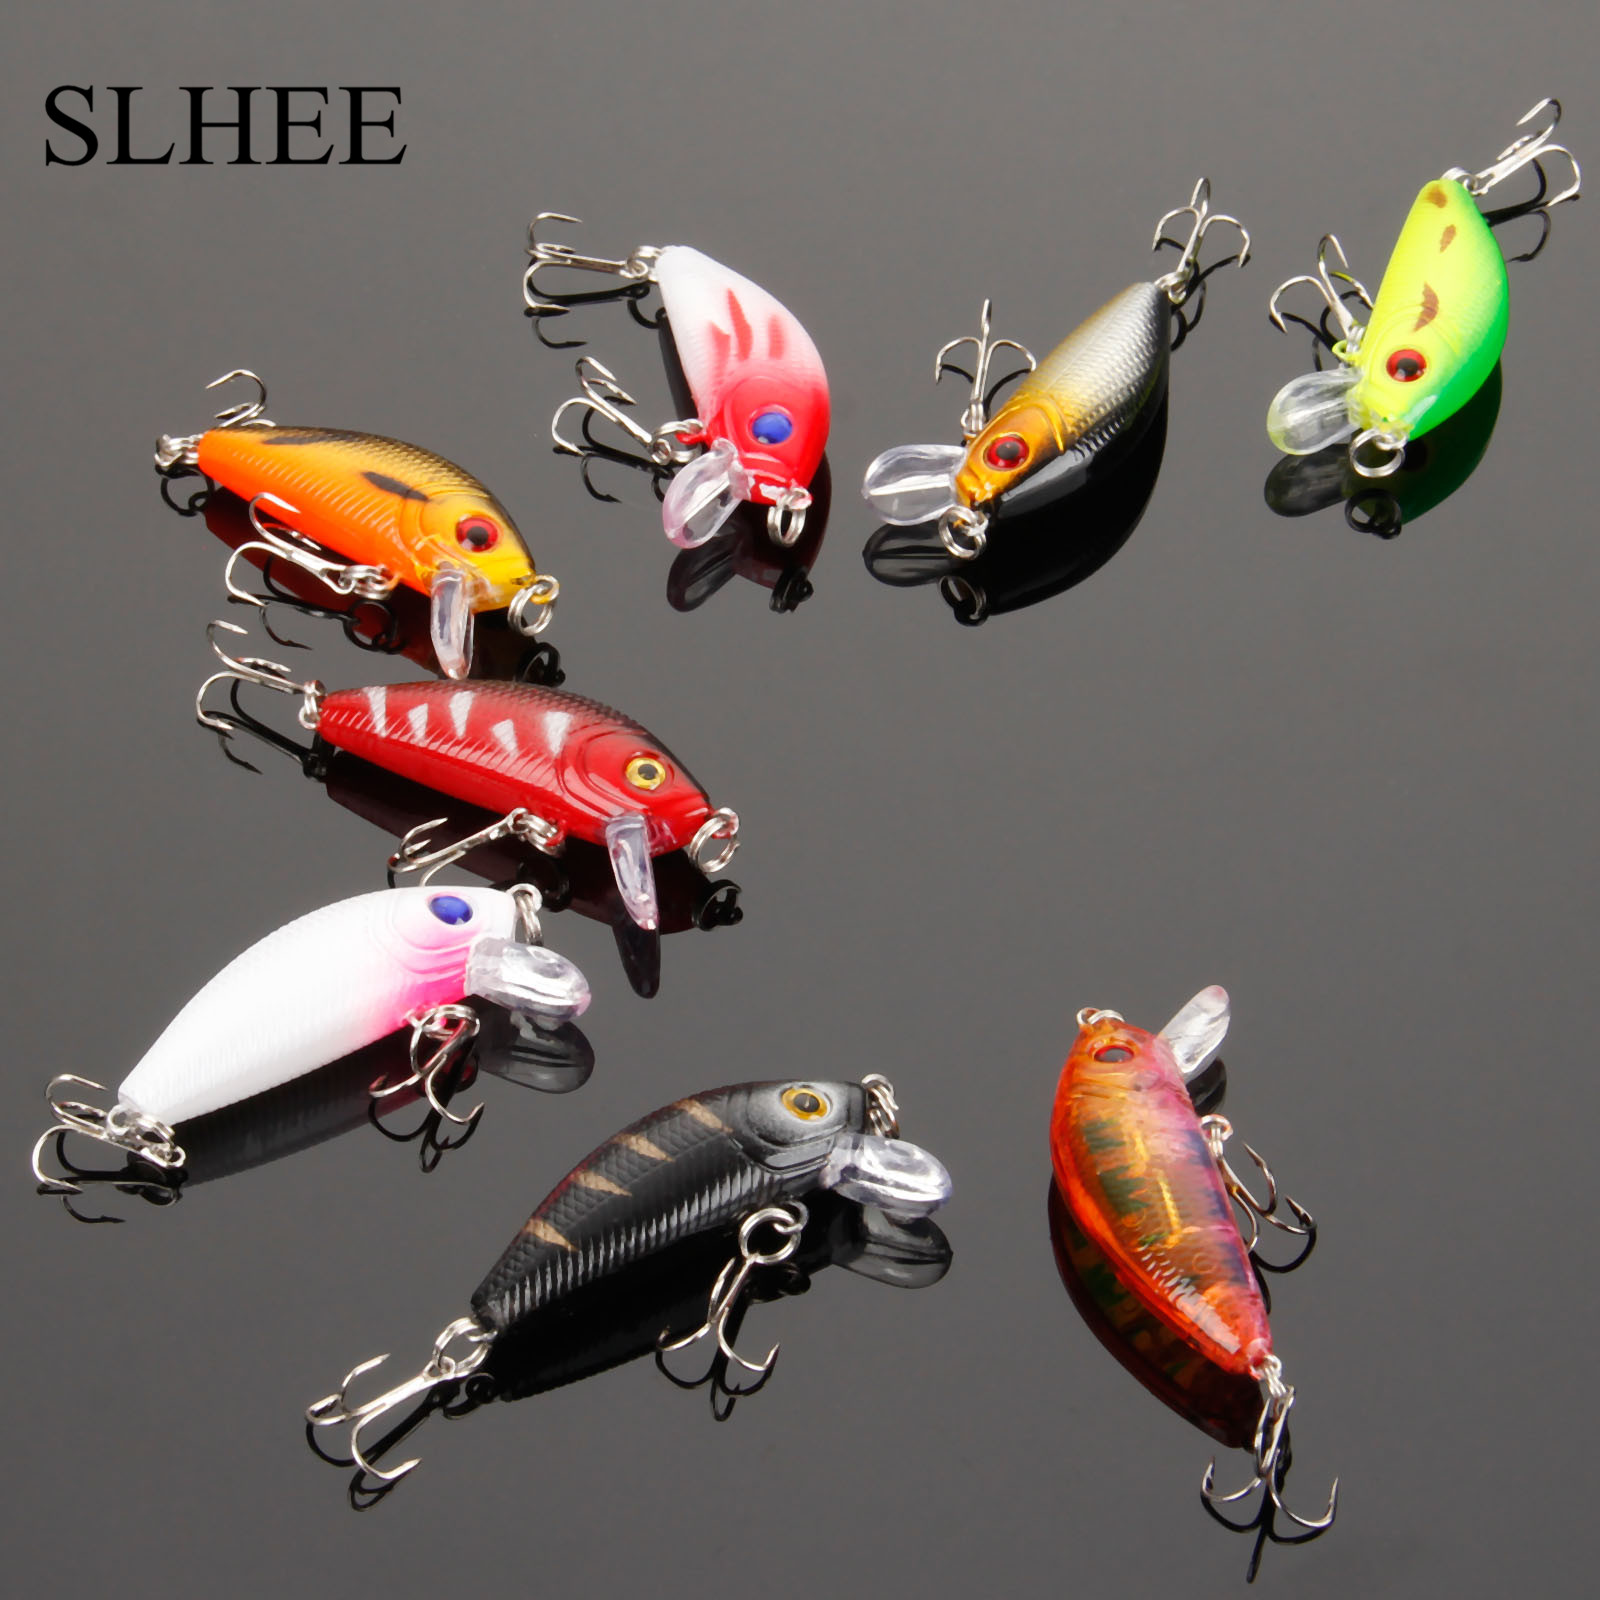 SLHEE 2017 8Pcs Fish Minnow Bass Lure Crankbait Trout Tackle Hook 3.6g 5cm Carp Artificial Bait Fishing Lures Wobbler 8 Colors 3pcs lot fishing lures mixed set minnow crankbaits topwater popper hook lure spinner baits crankbait bass wobbler tackle hook